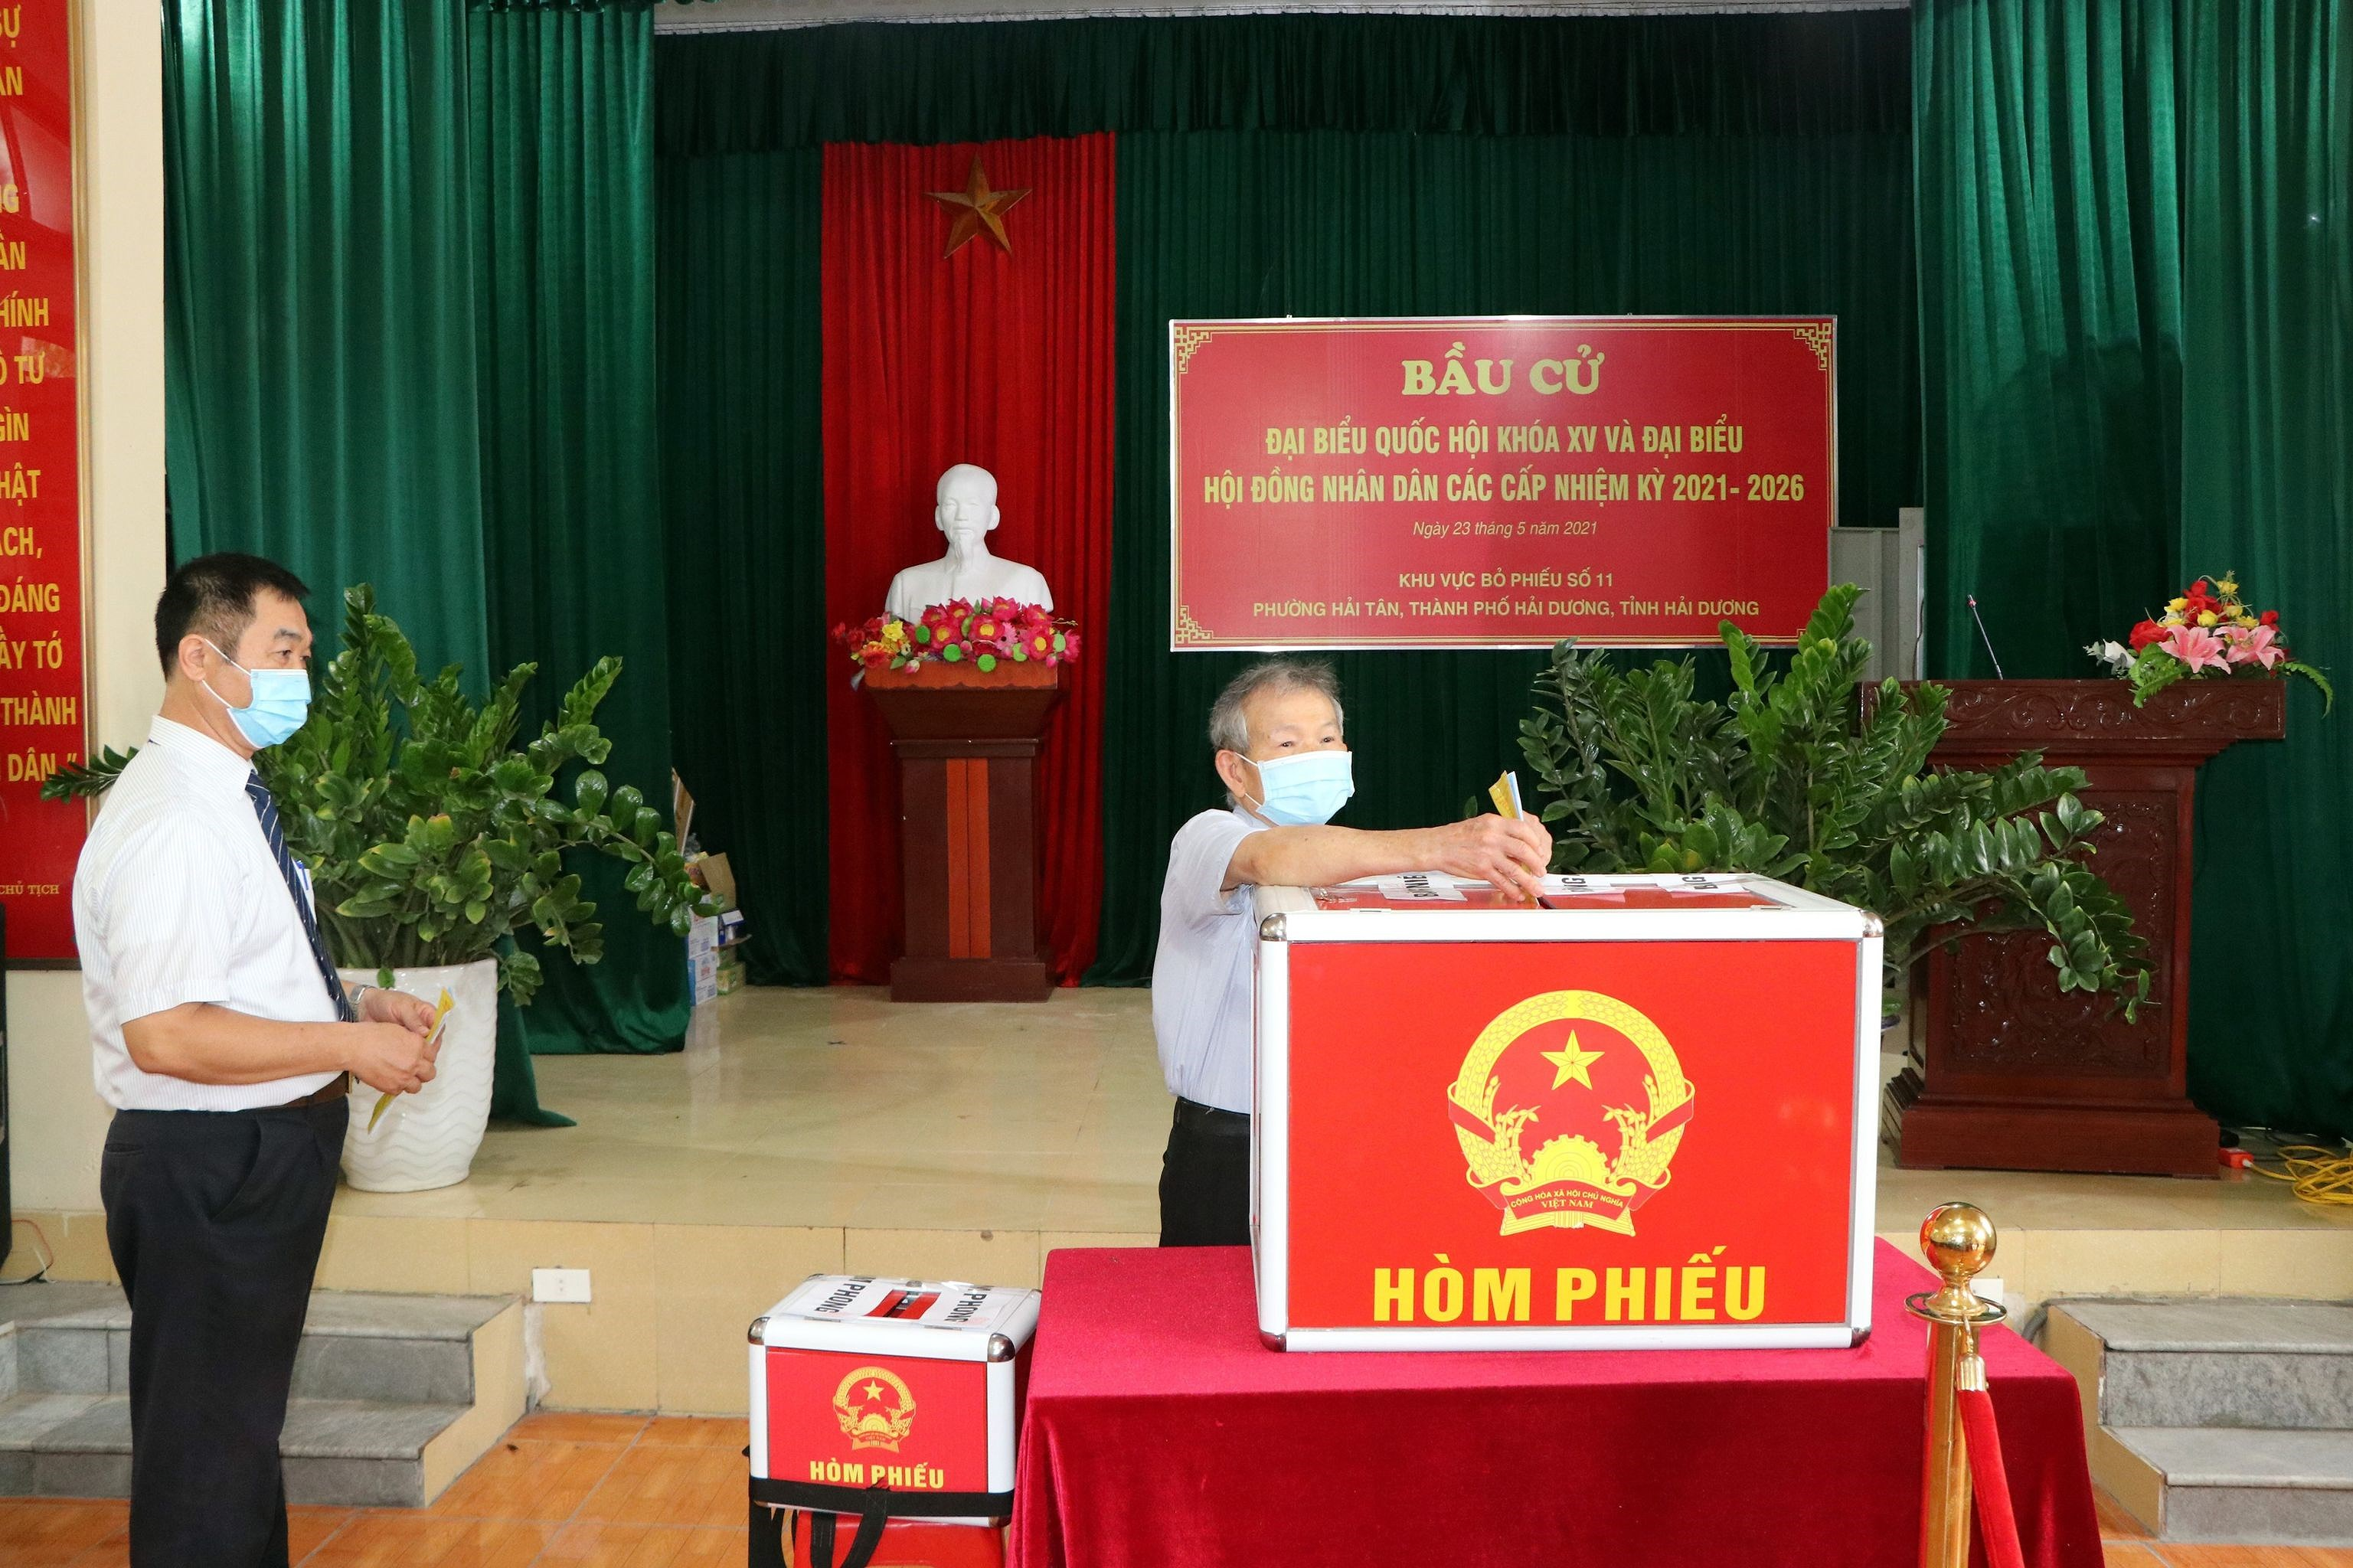 Voters nationwide cast ballots hinh anh 15